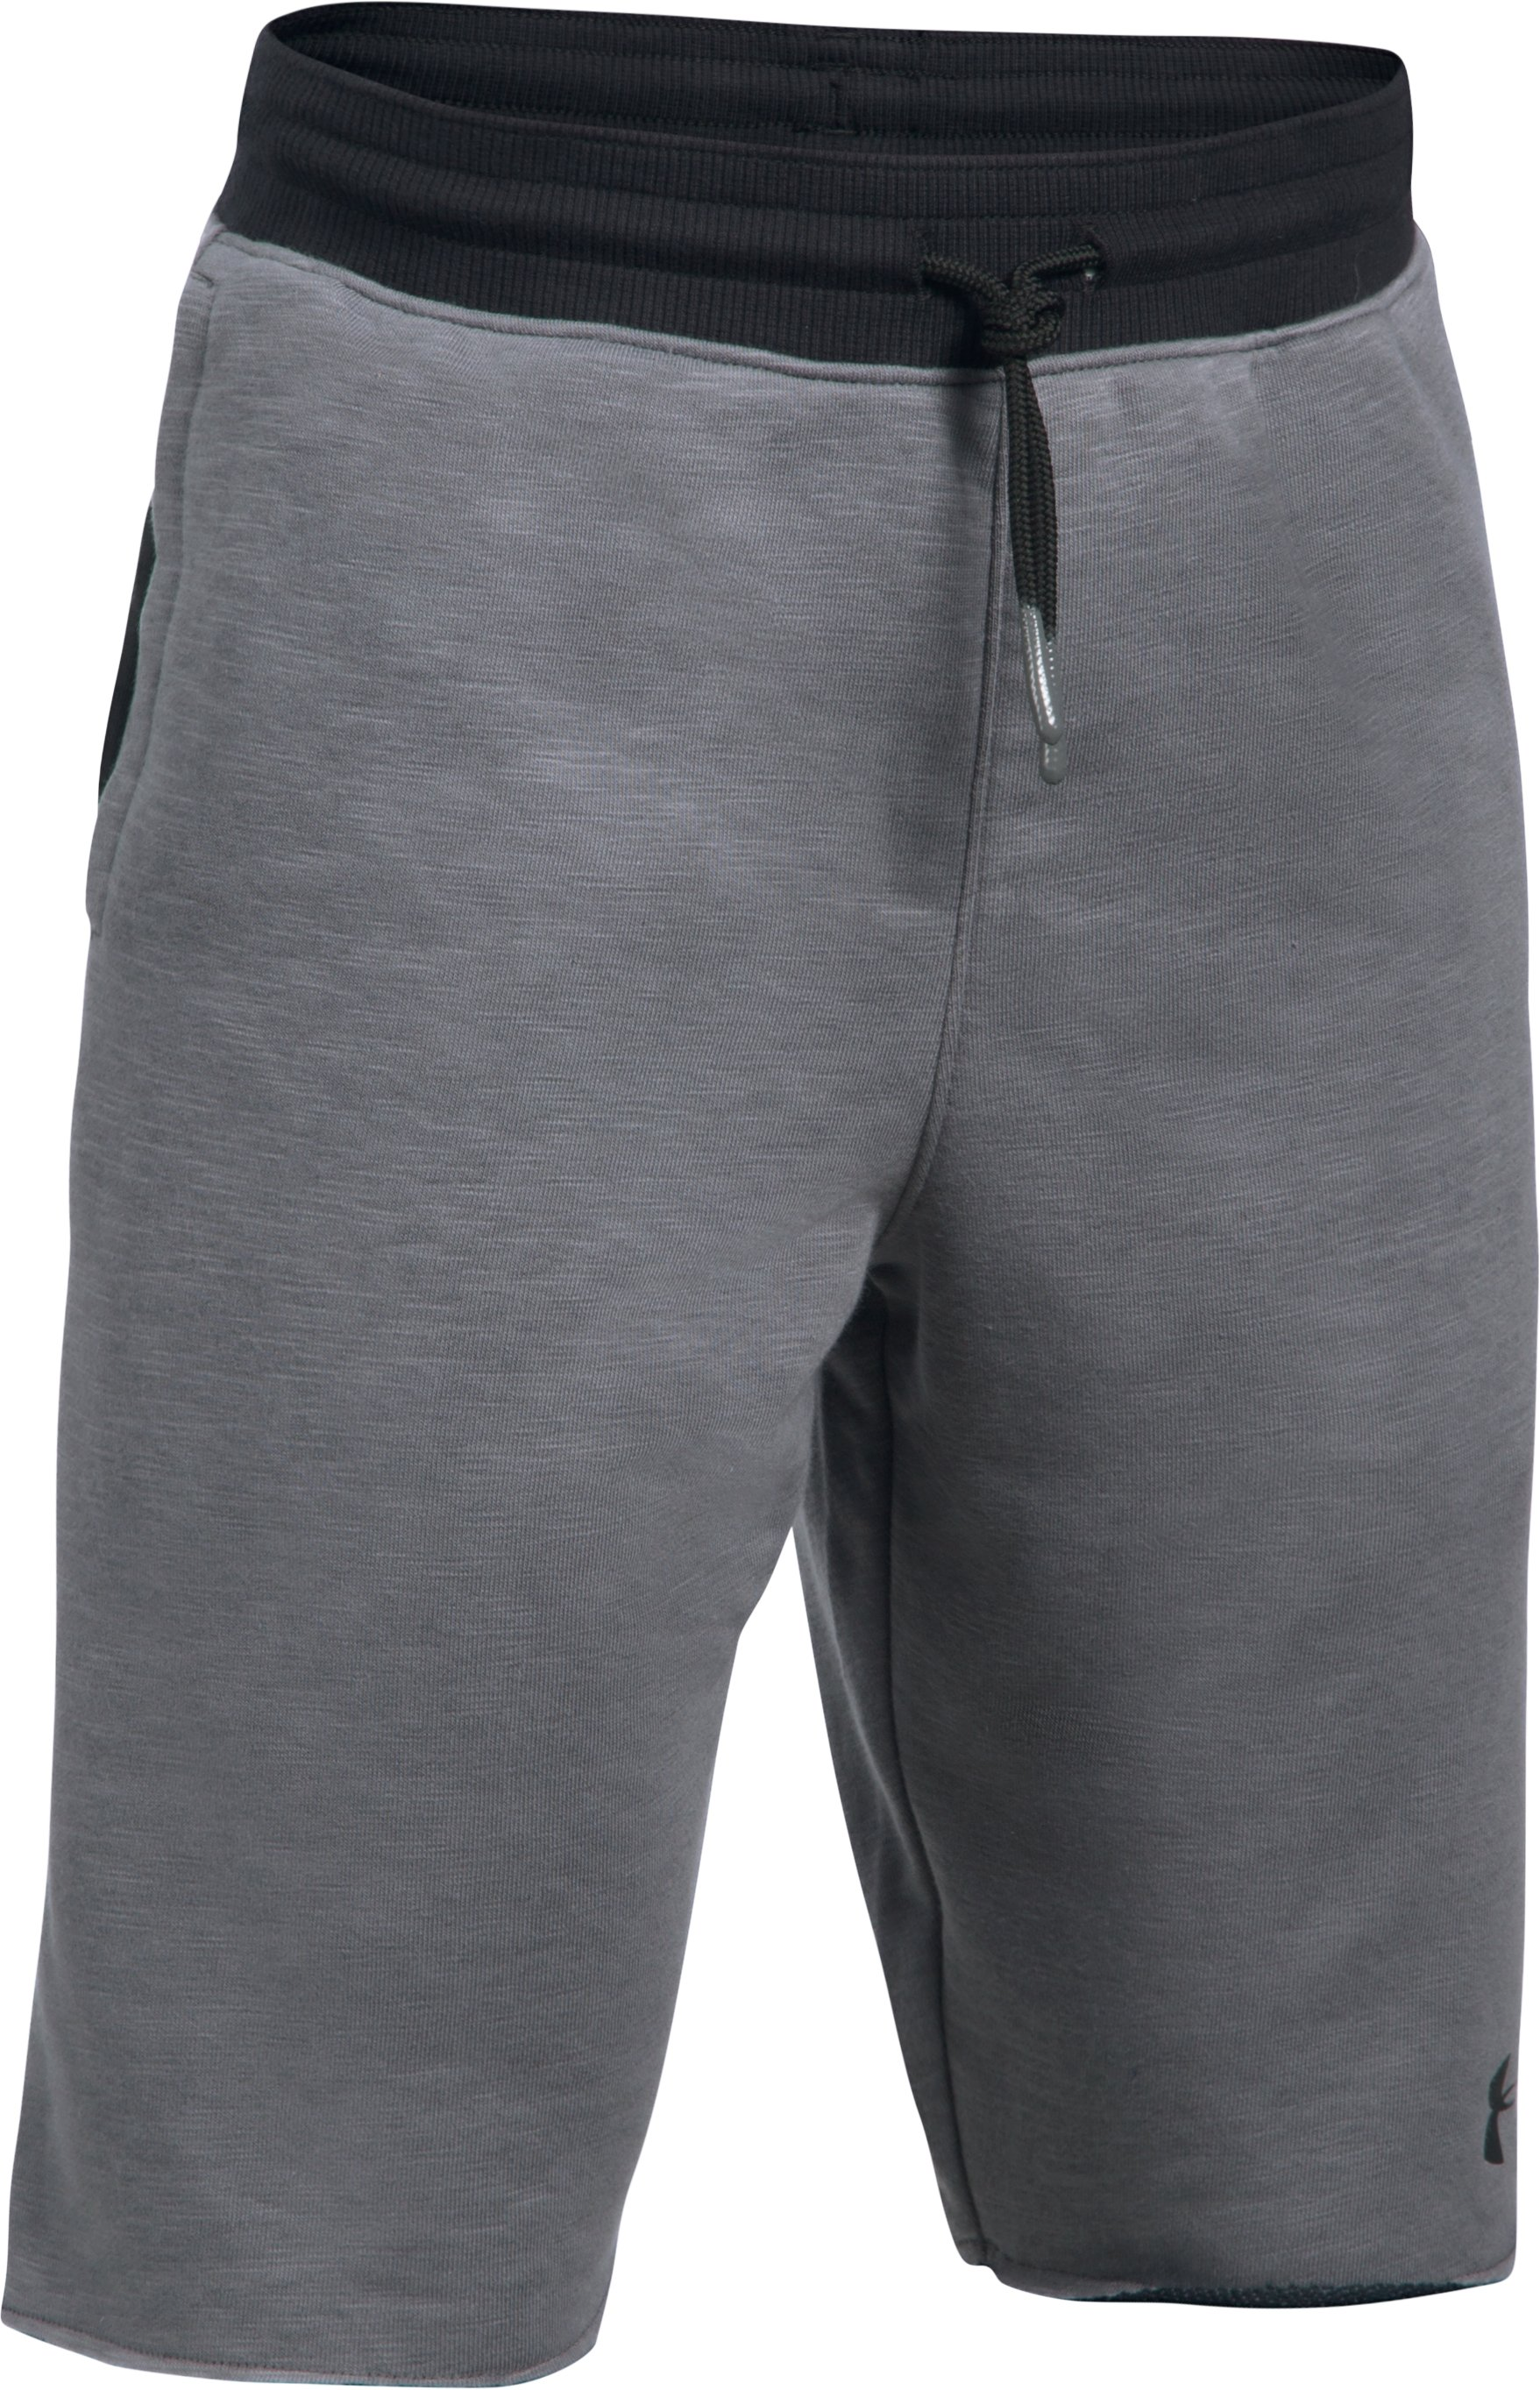 Boys' UA Select Terry Shorts, Graphite